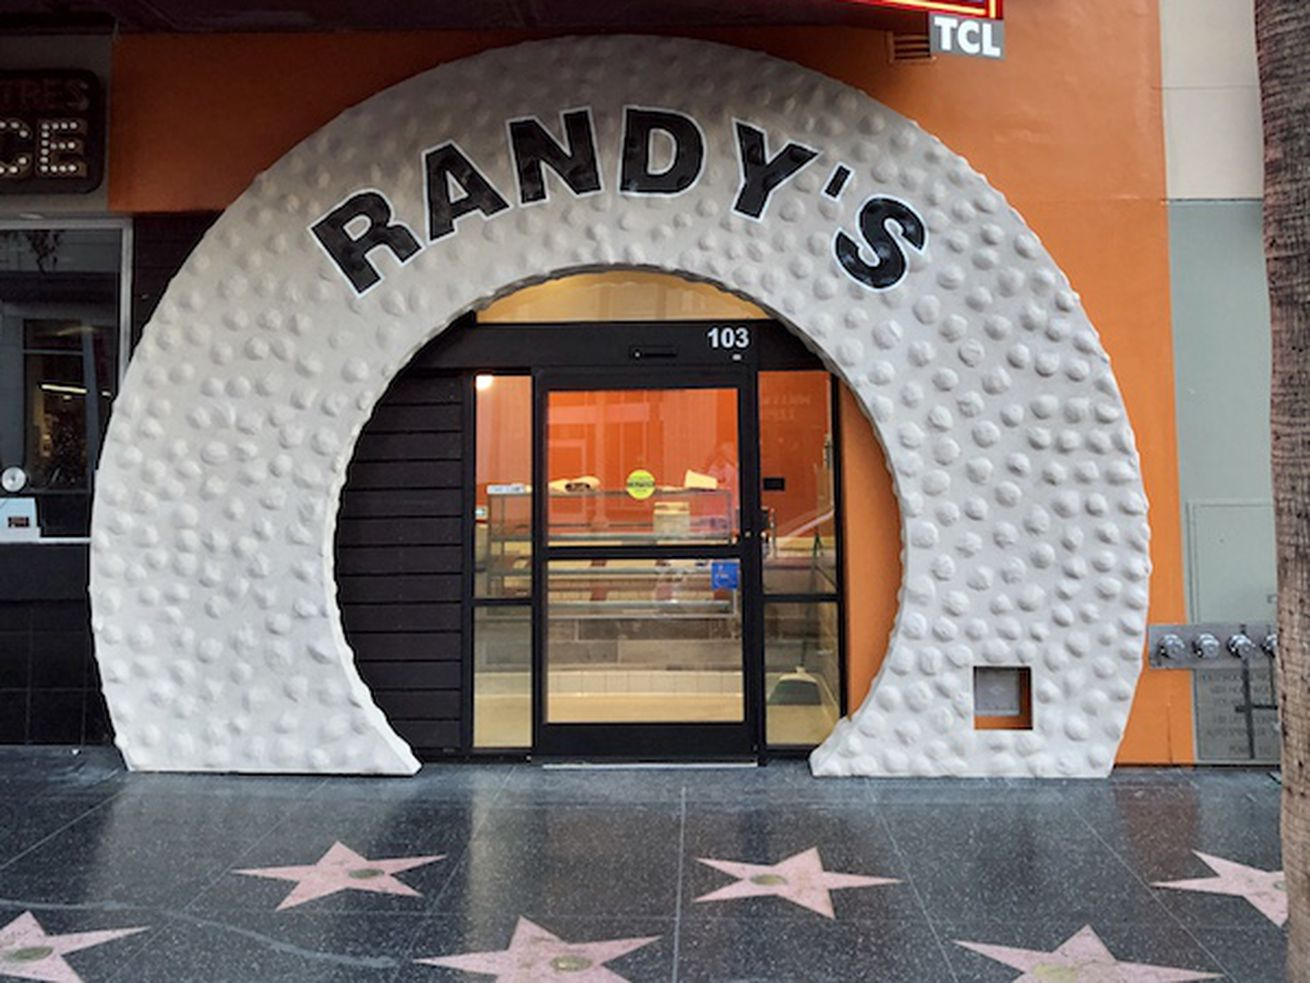 Randy's Donuts in Hollywood